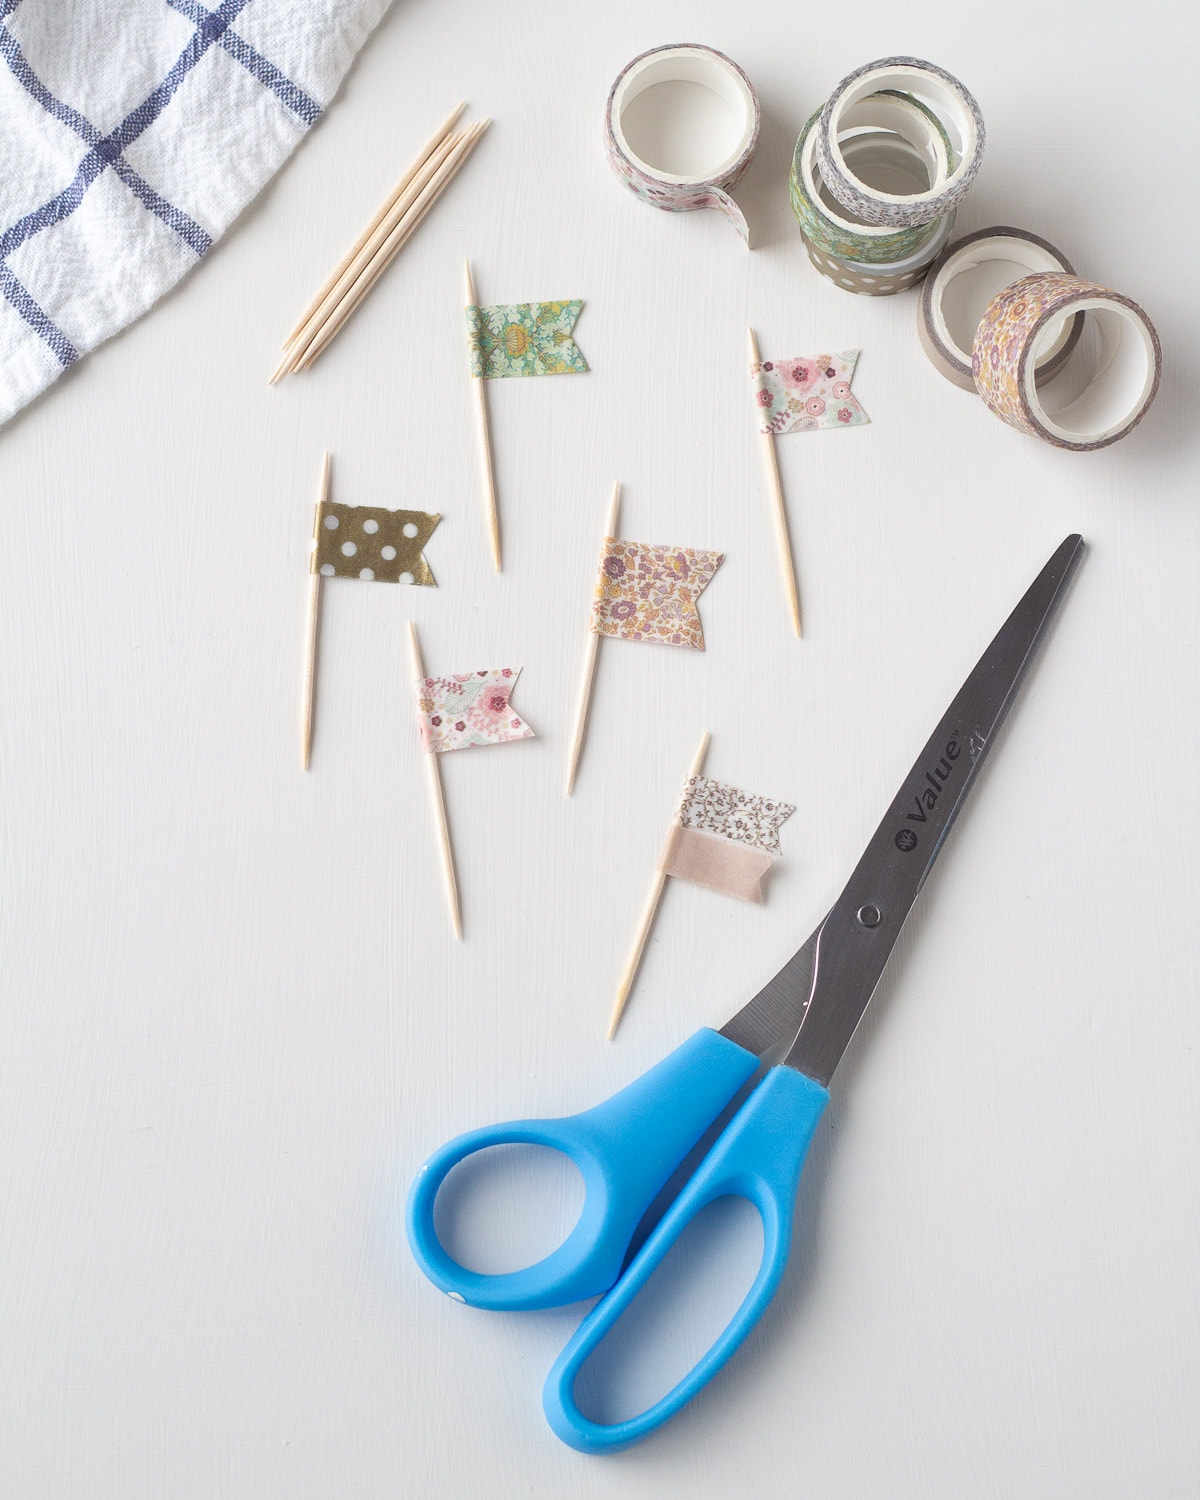 Washi tape flags, spools of washi tape, and scissors on white background.